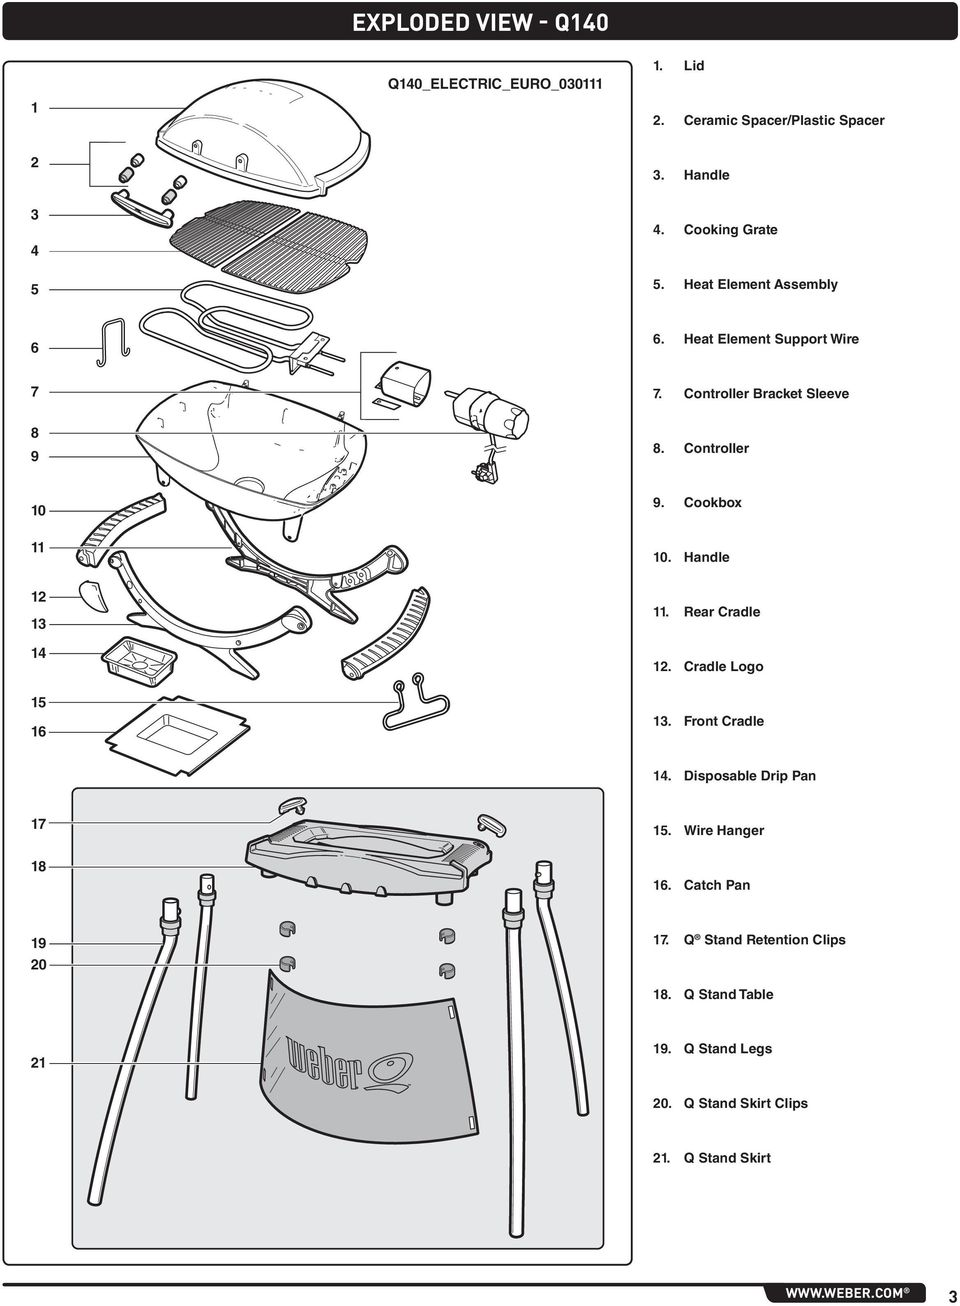 Handle 12 13 14 11. Rear Cradle 12. Cradle Logo 15 16 13. Front Cradle 14. Disposable Drip Pan 17 15. Wire Hanger 18 16.